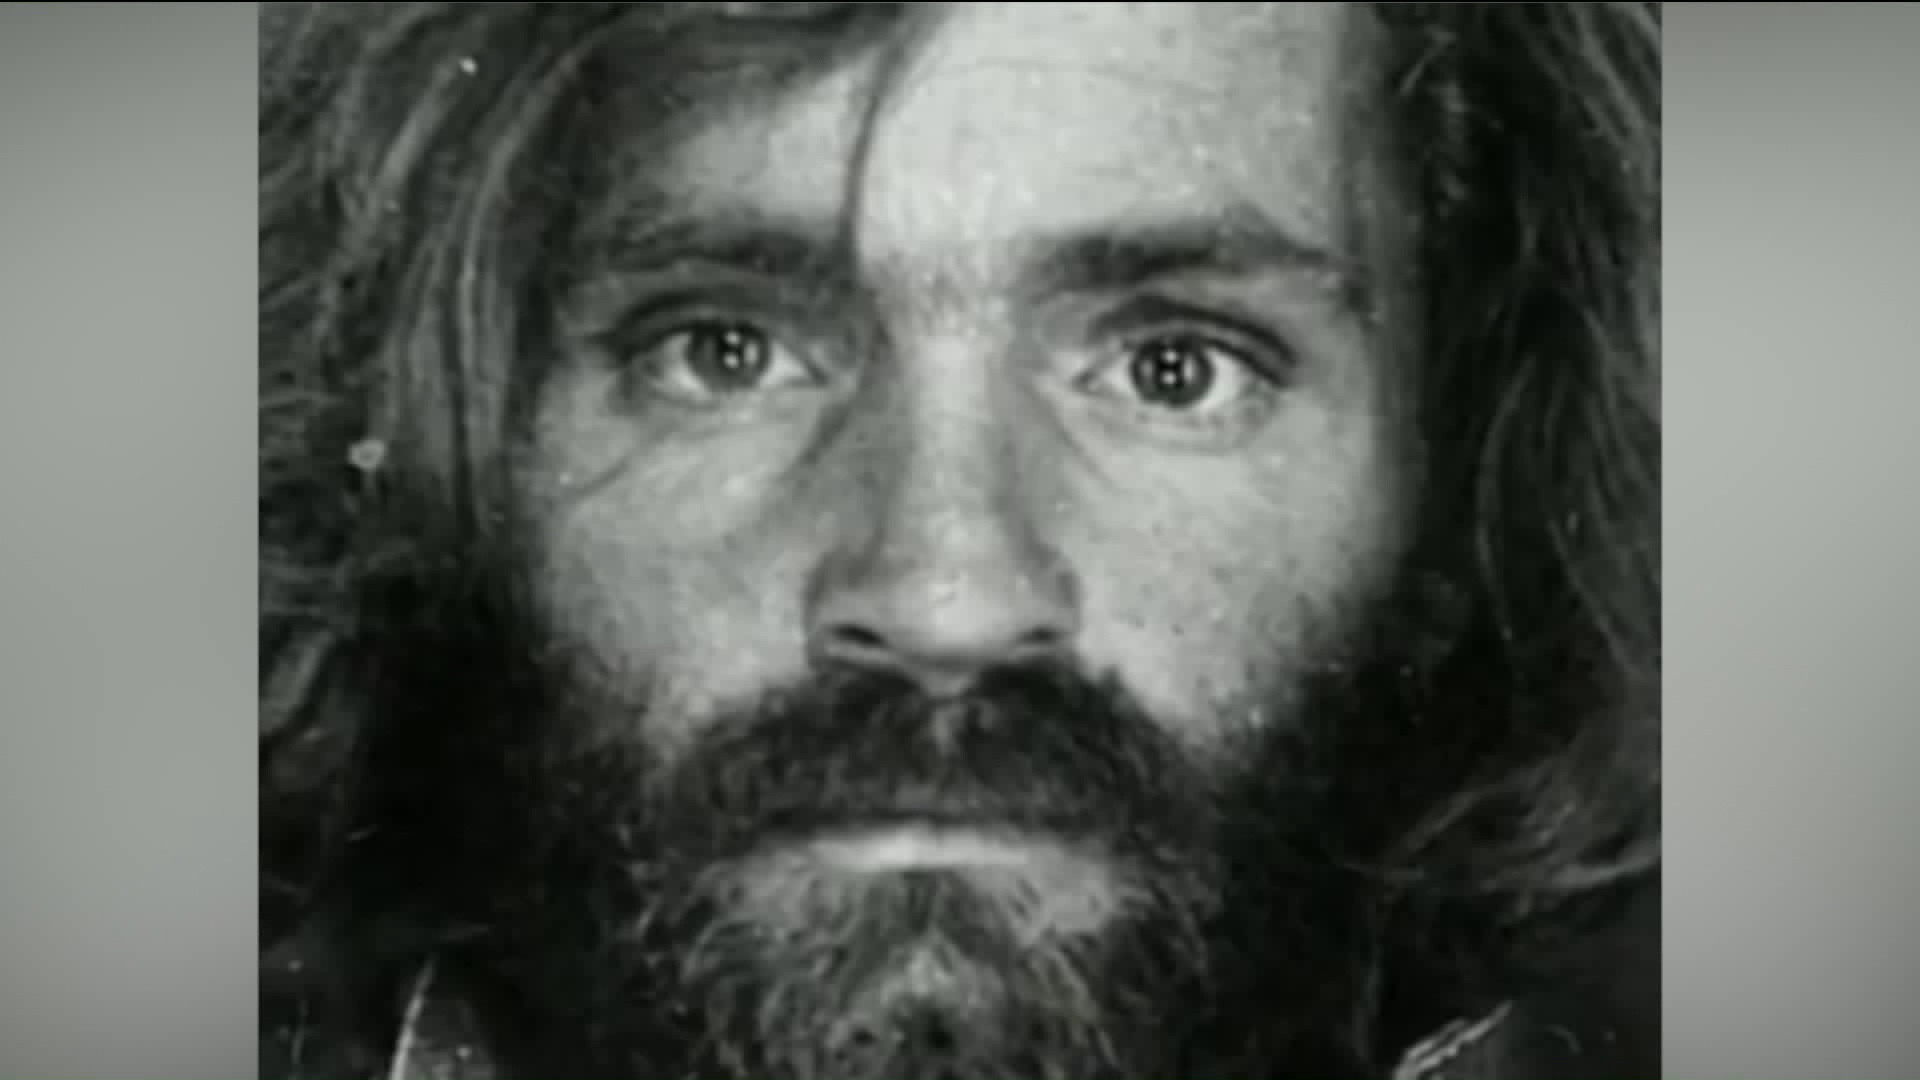 "charles manson manson murders and the The horrific crimes committed by manson and the manson family are described below names to know charles manson – leader of the manson family, and the manipulative mastermind behind a series of murders charles ""tex"" watson – member of the."